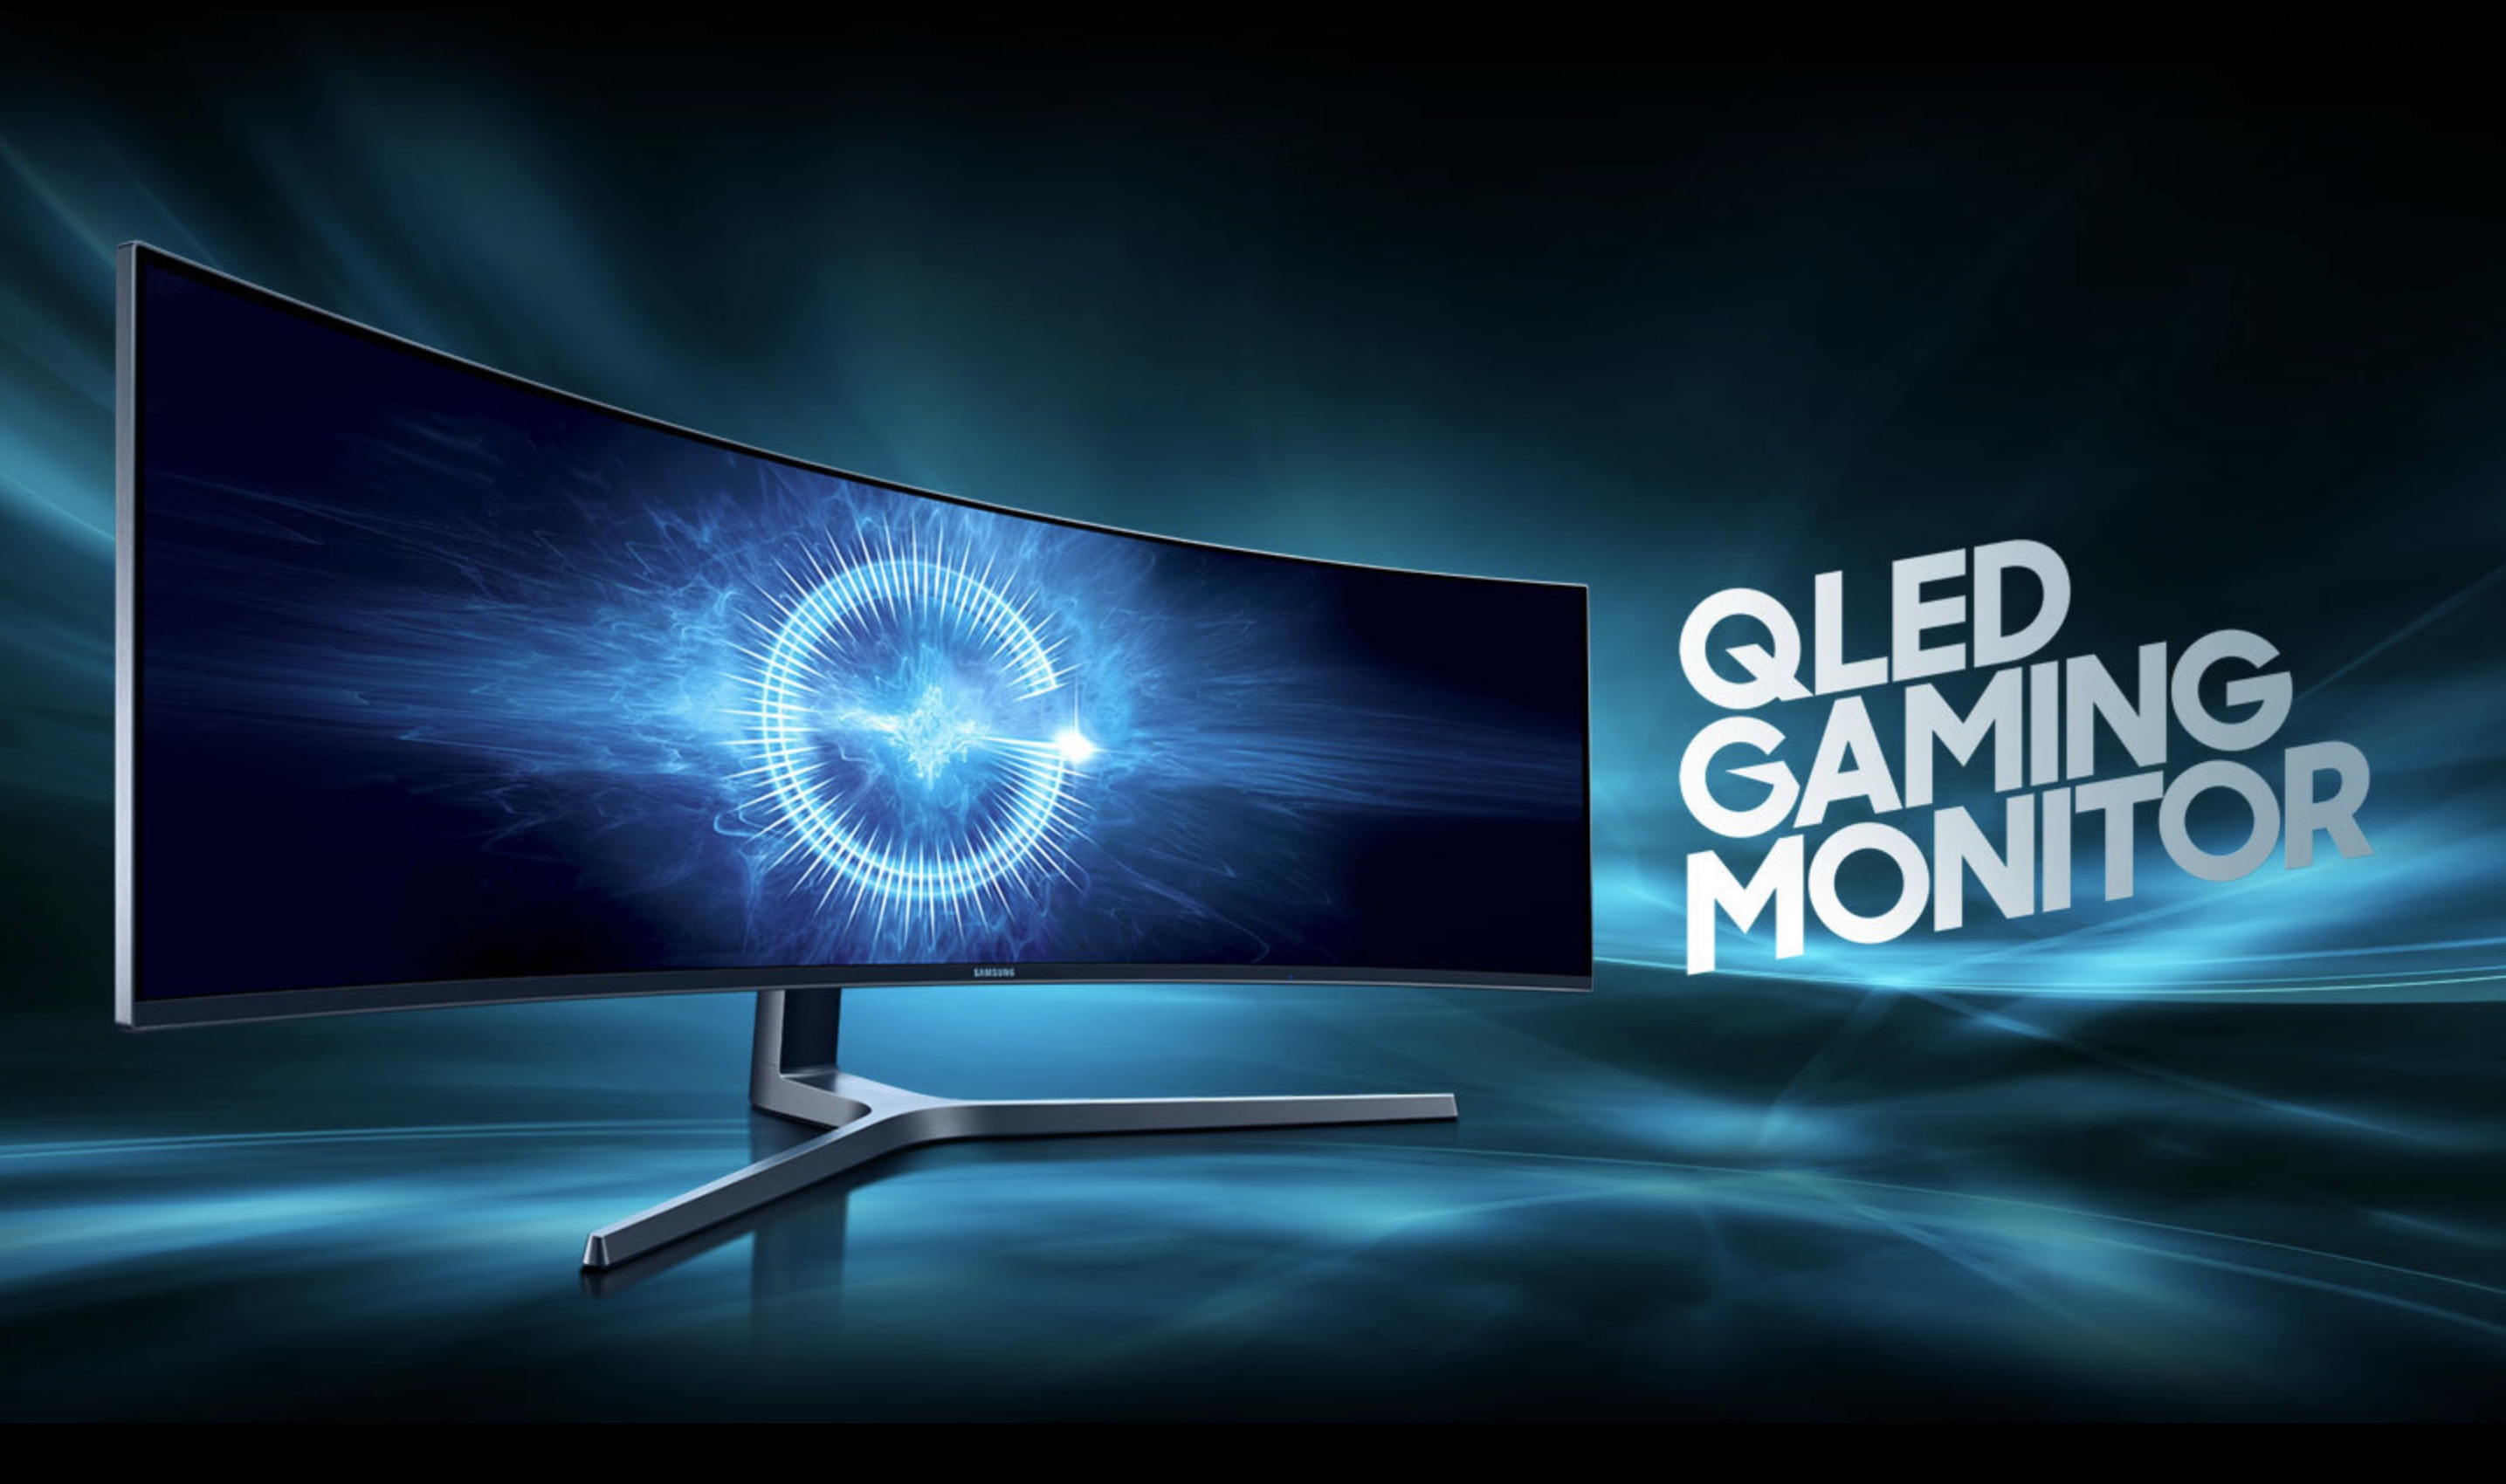 Samsung's massive 49-inch curved widescreen monitor has HDR, 144Hz refresh, more